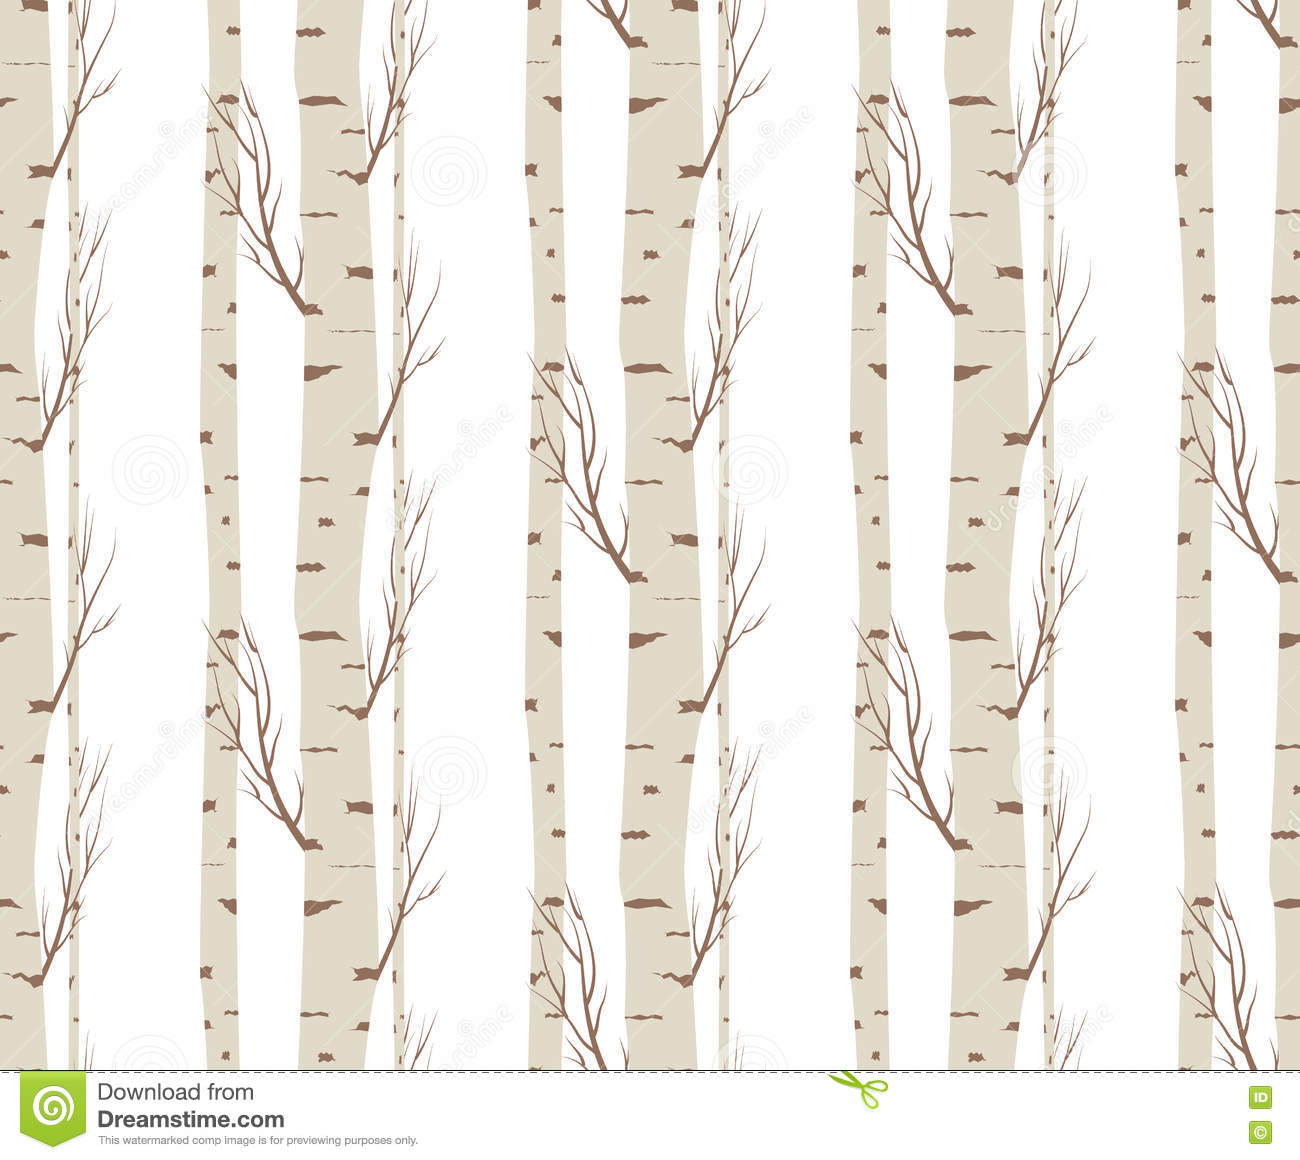 Finest Seamless Pattern, Background With Birch Trees .textile, Fabrics Or  MG11